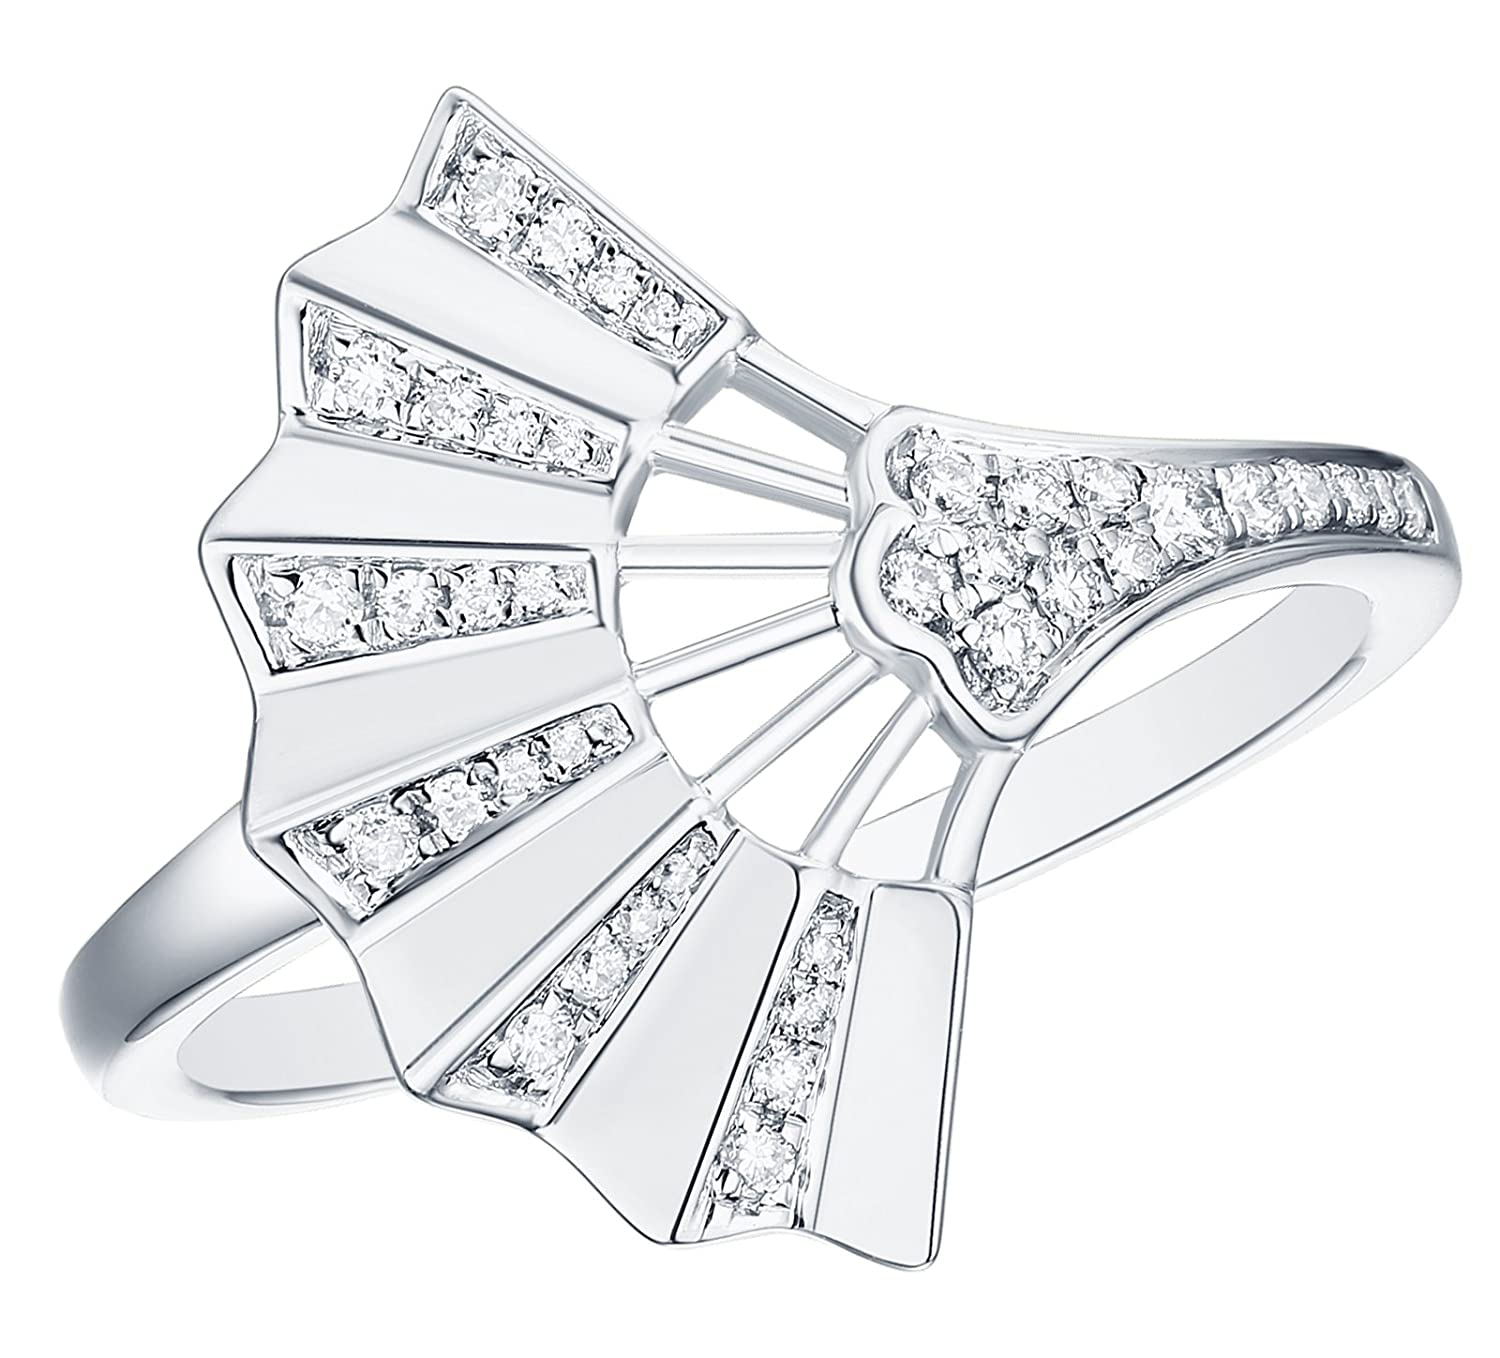 Prism Jewel 0.15Ct Round G-H//I1 Natural Diamond Hand Fan Style Ring 10k Gold